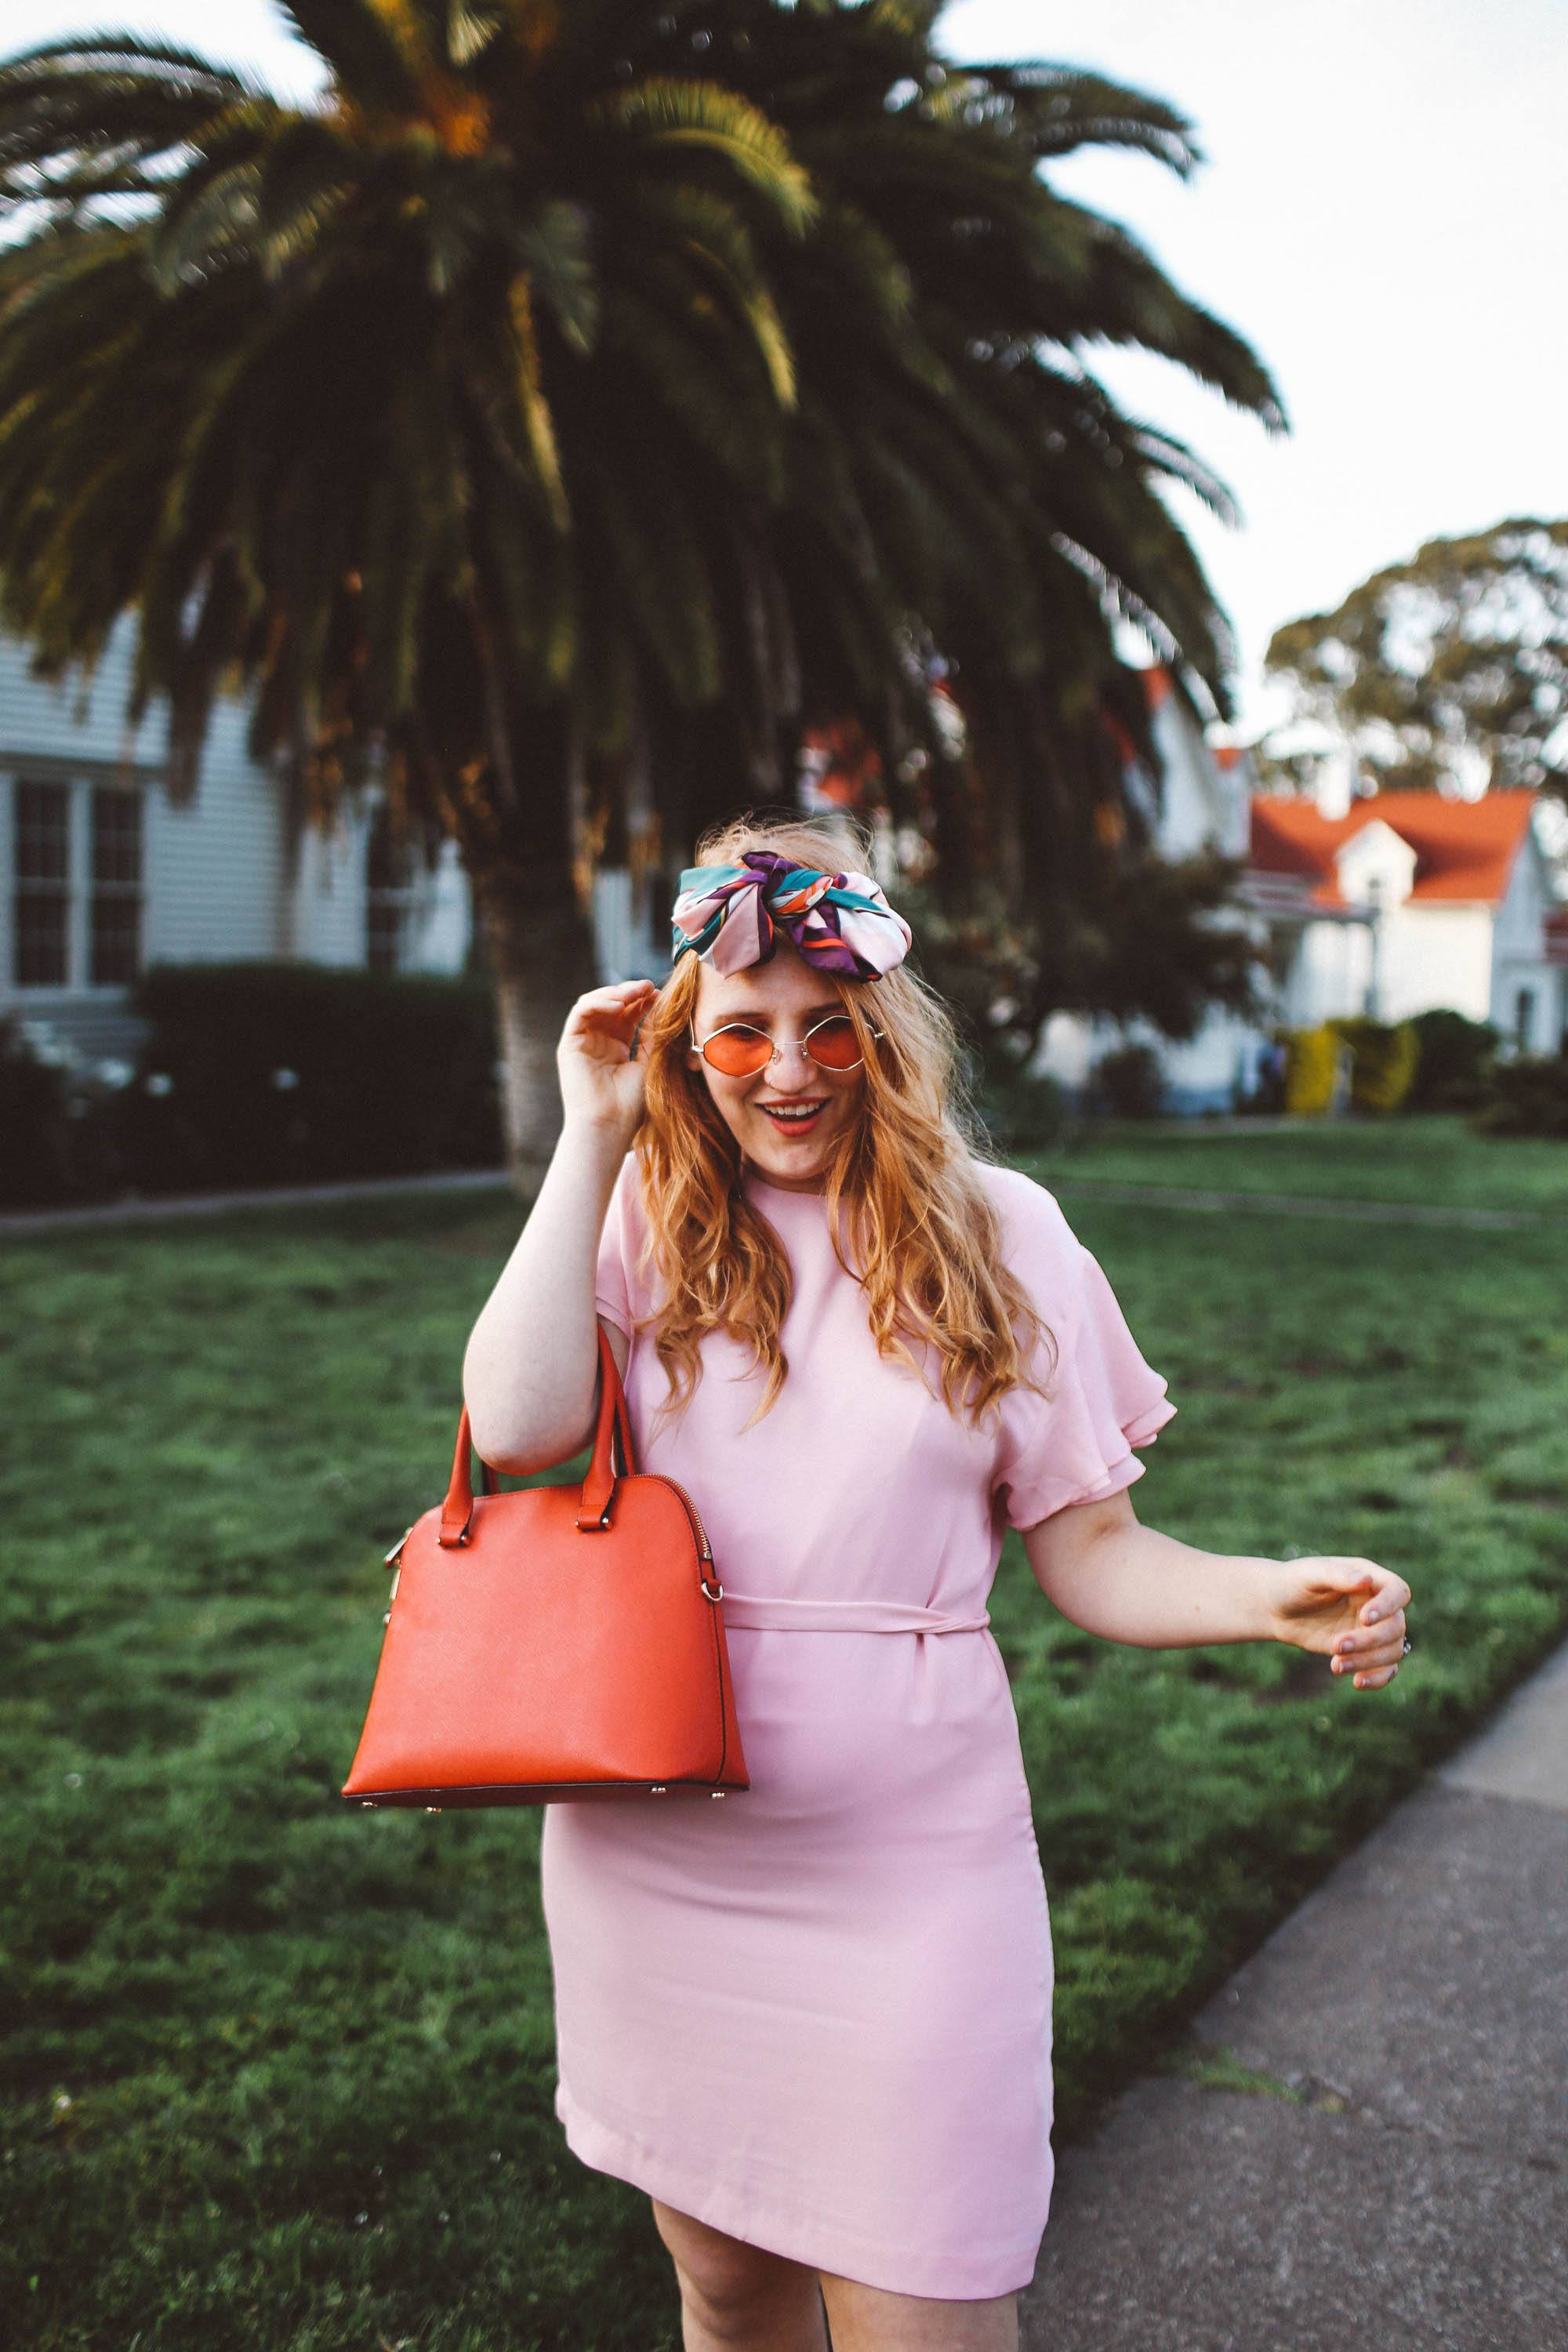 woman wearing headscarf, pink dress, pink sunglasses in San Francisco Presidio